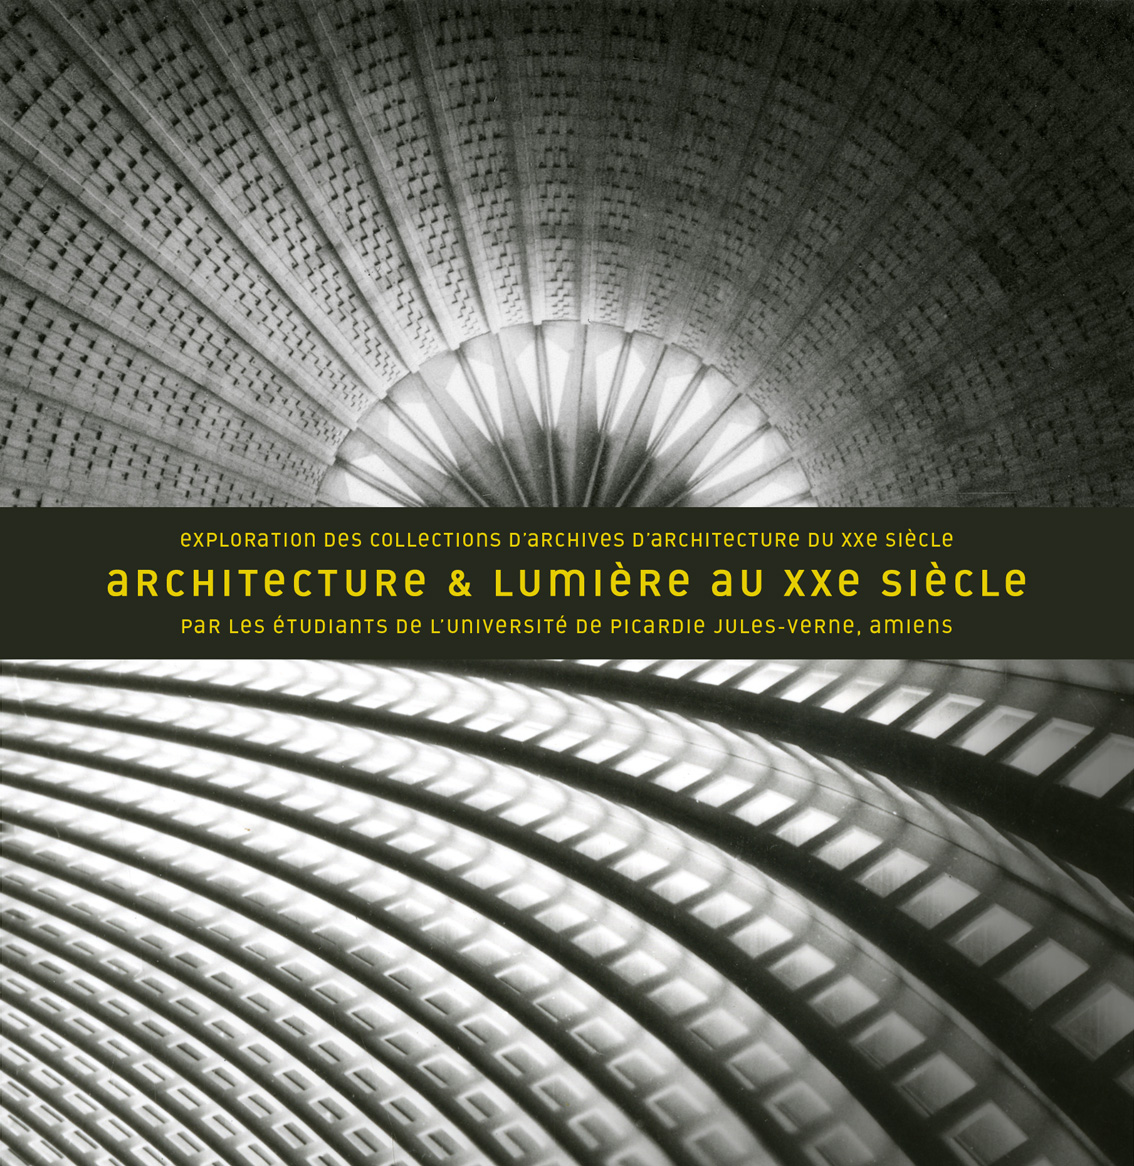 Architecture lumi re au xxe si cle cit de l for Architecture 20eme siecle